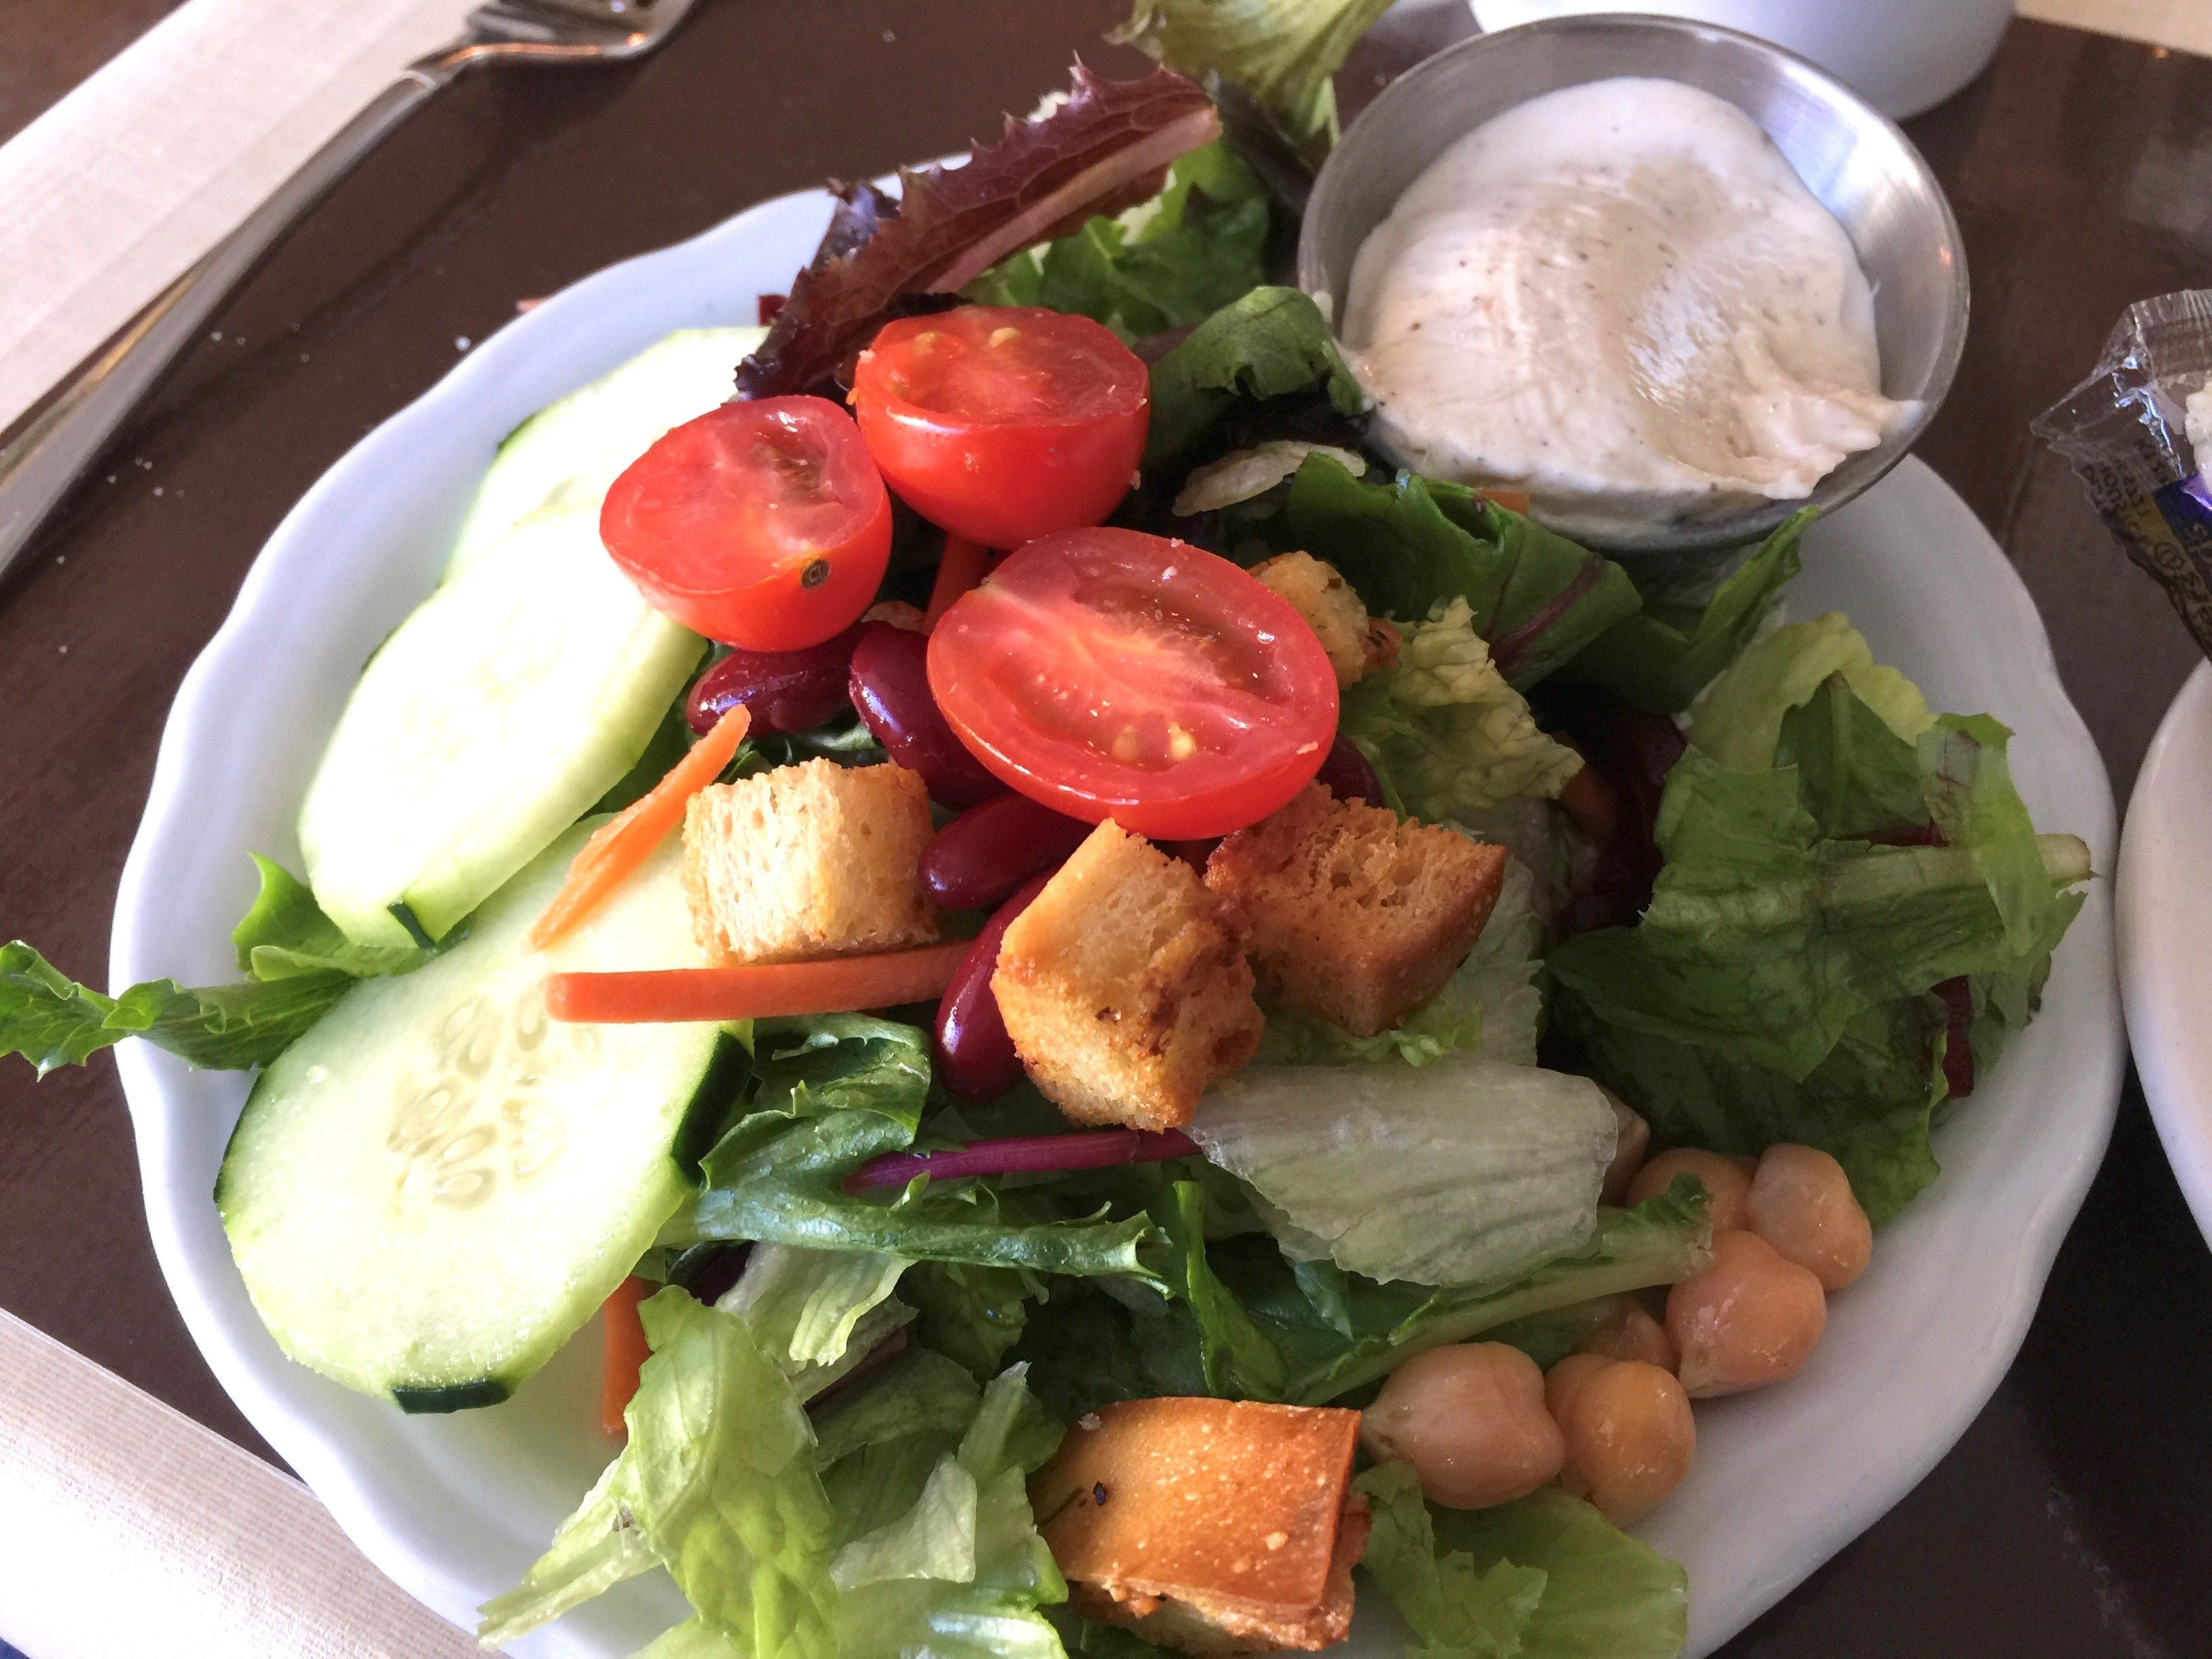 A salad with caesar dressing at The Classroom